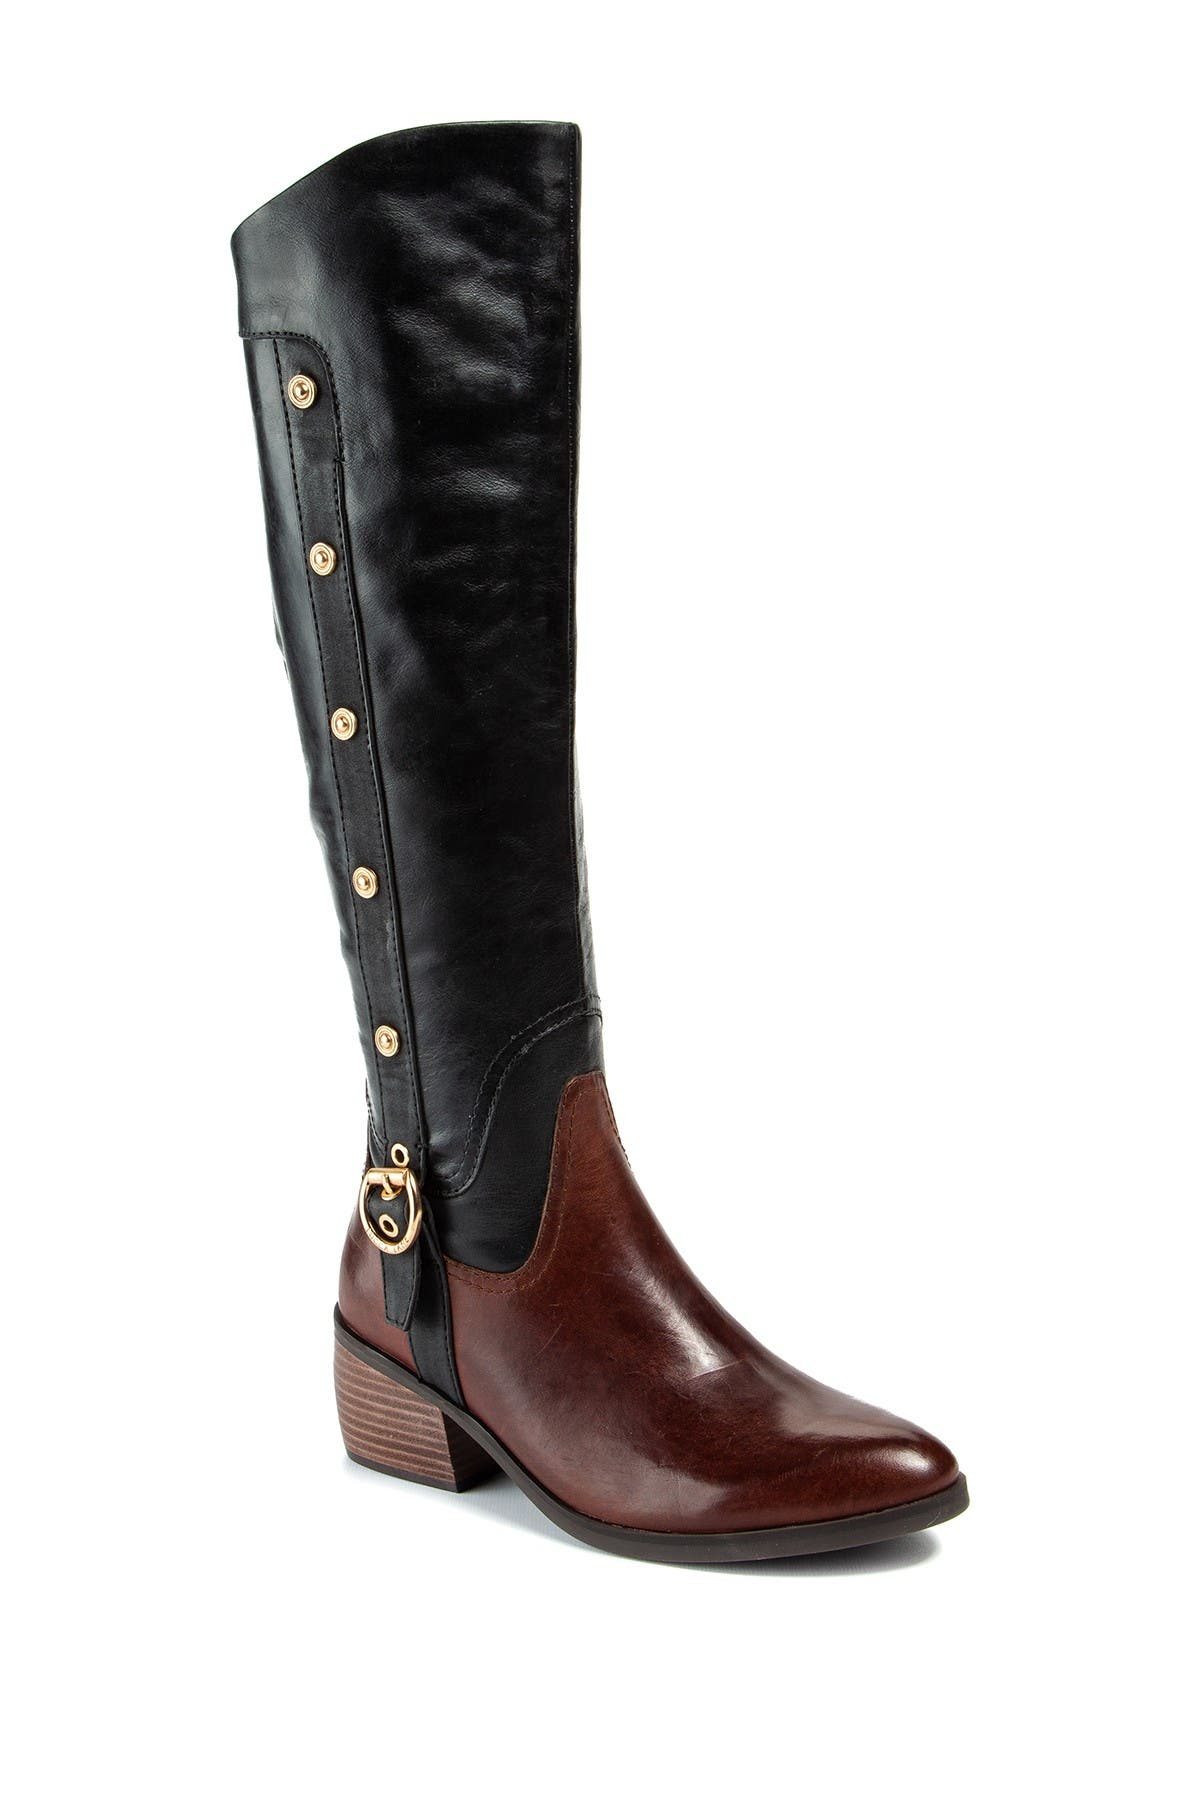 Image of LUCCA LANE Marella Tall Boot